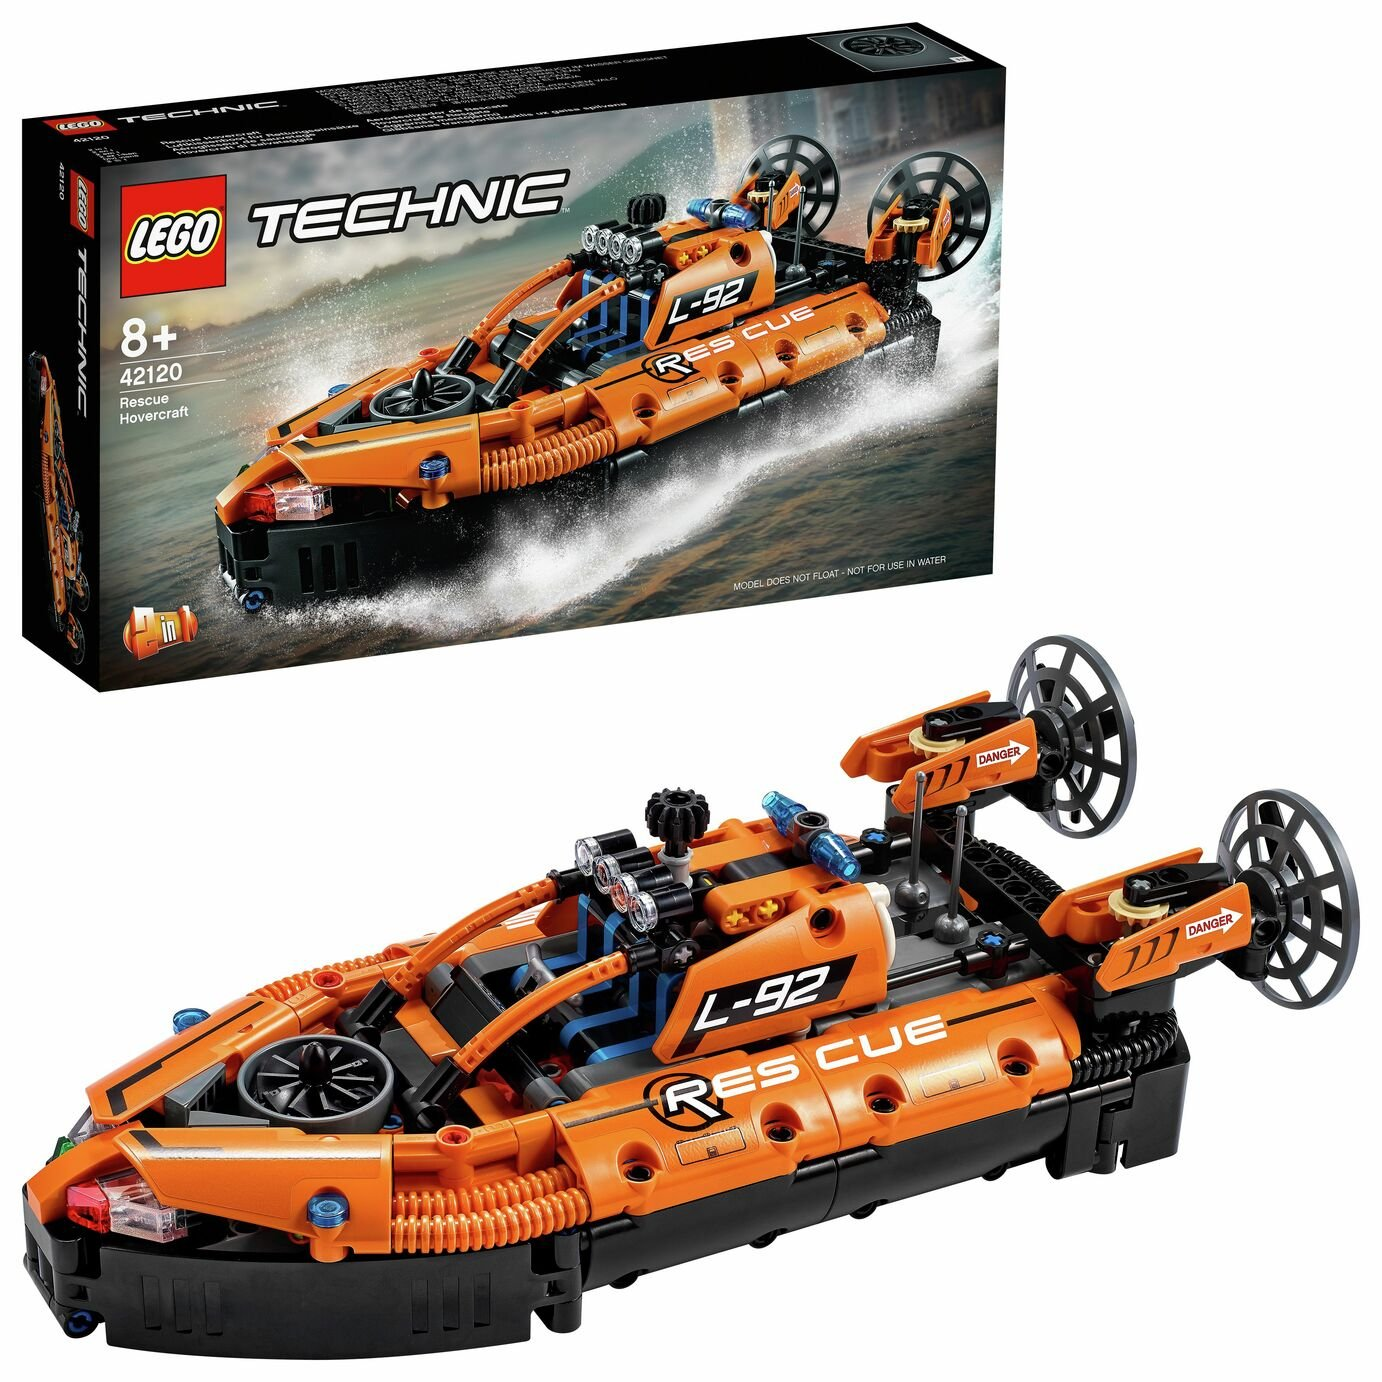 LEGO Technic Rescue Hovercraft and Plane 2 in 1 Set 42120